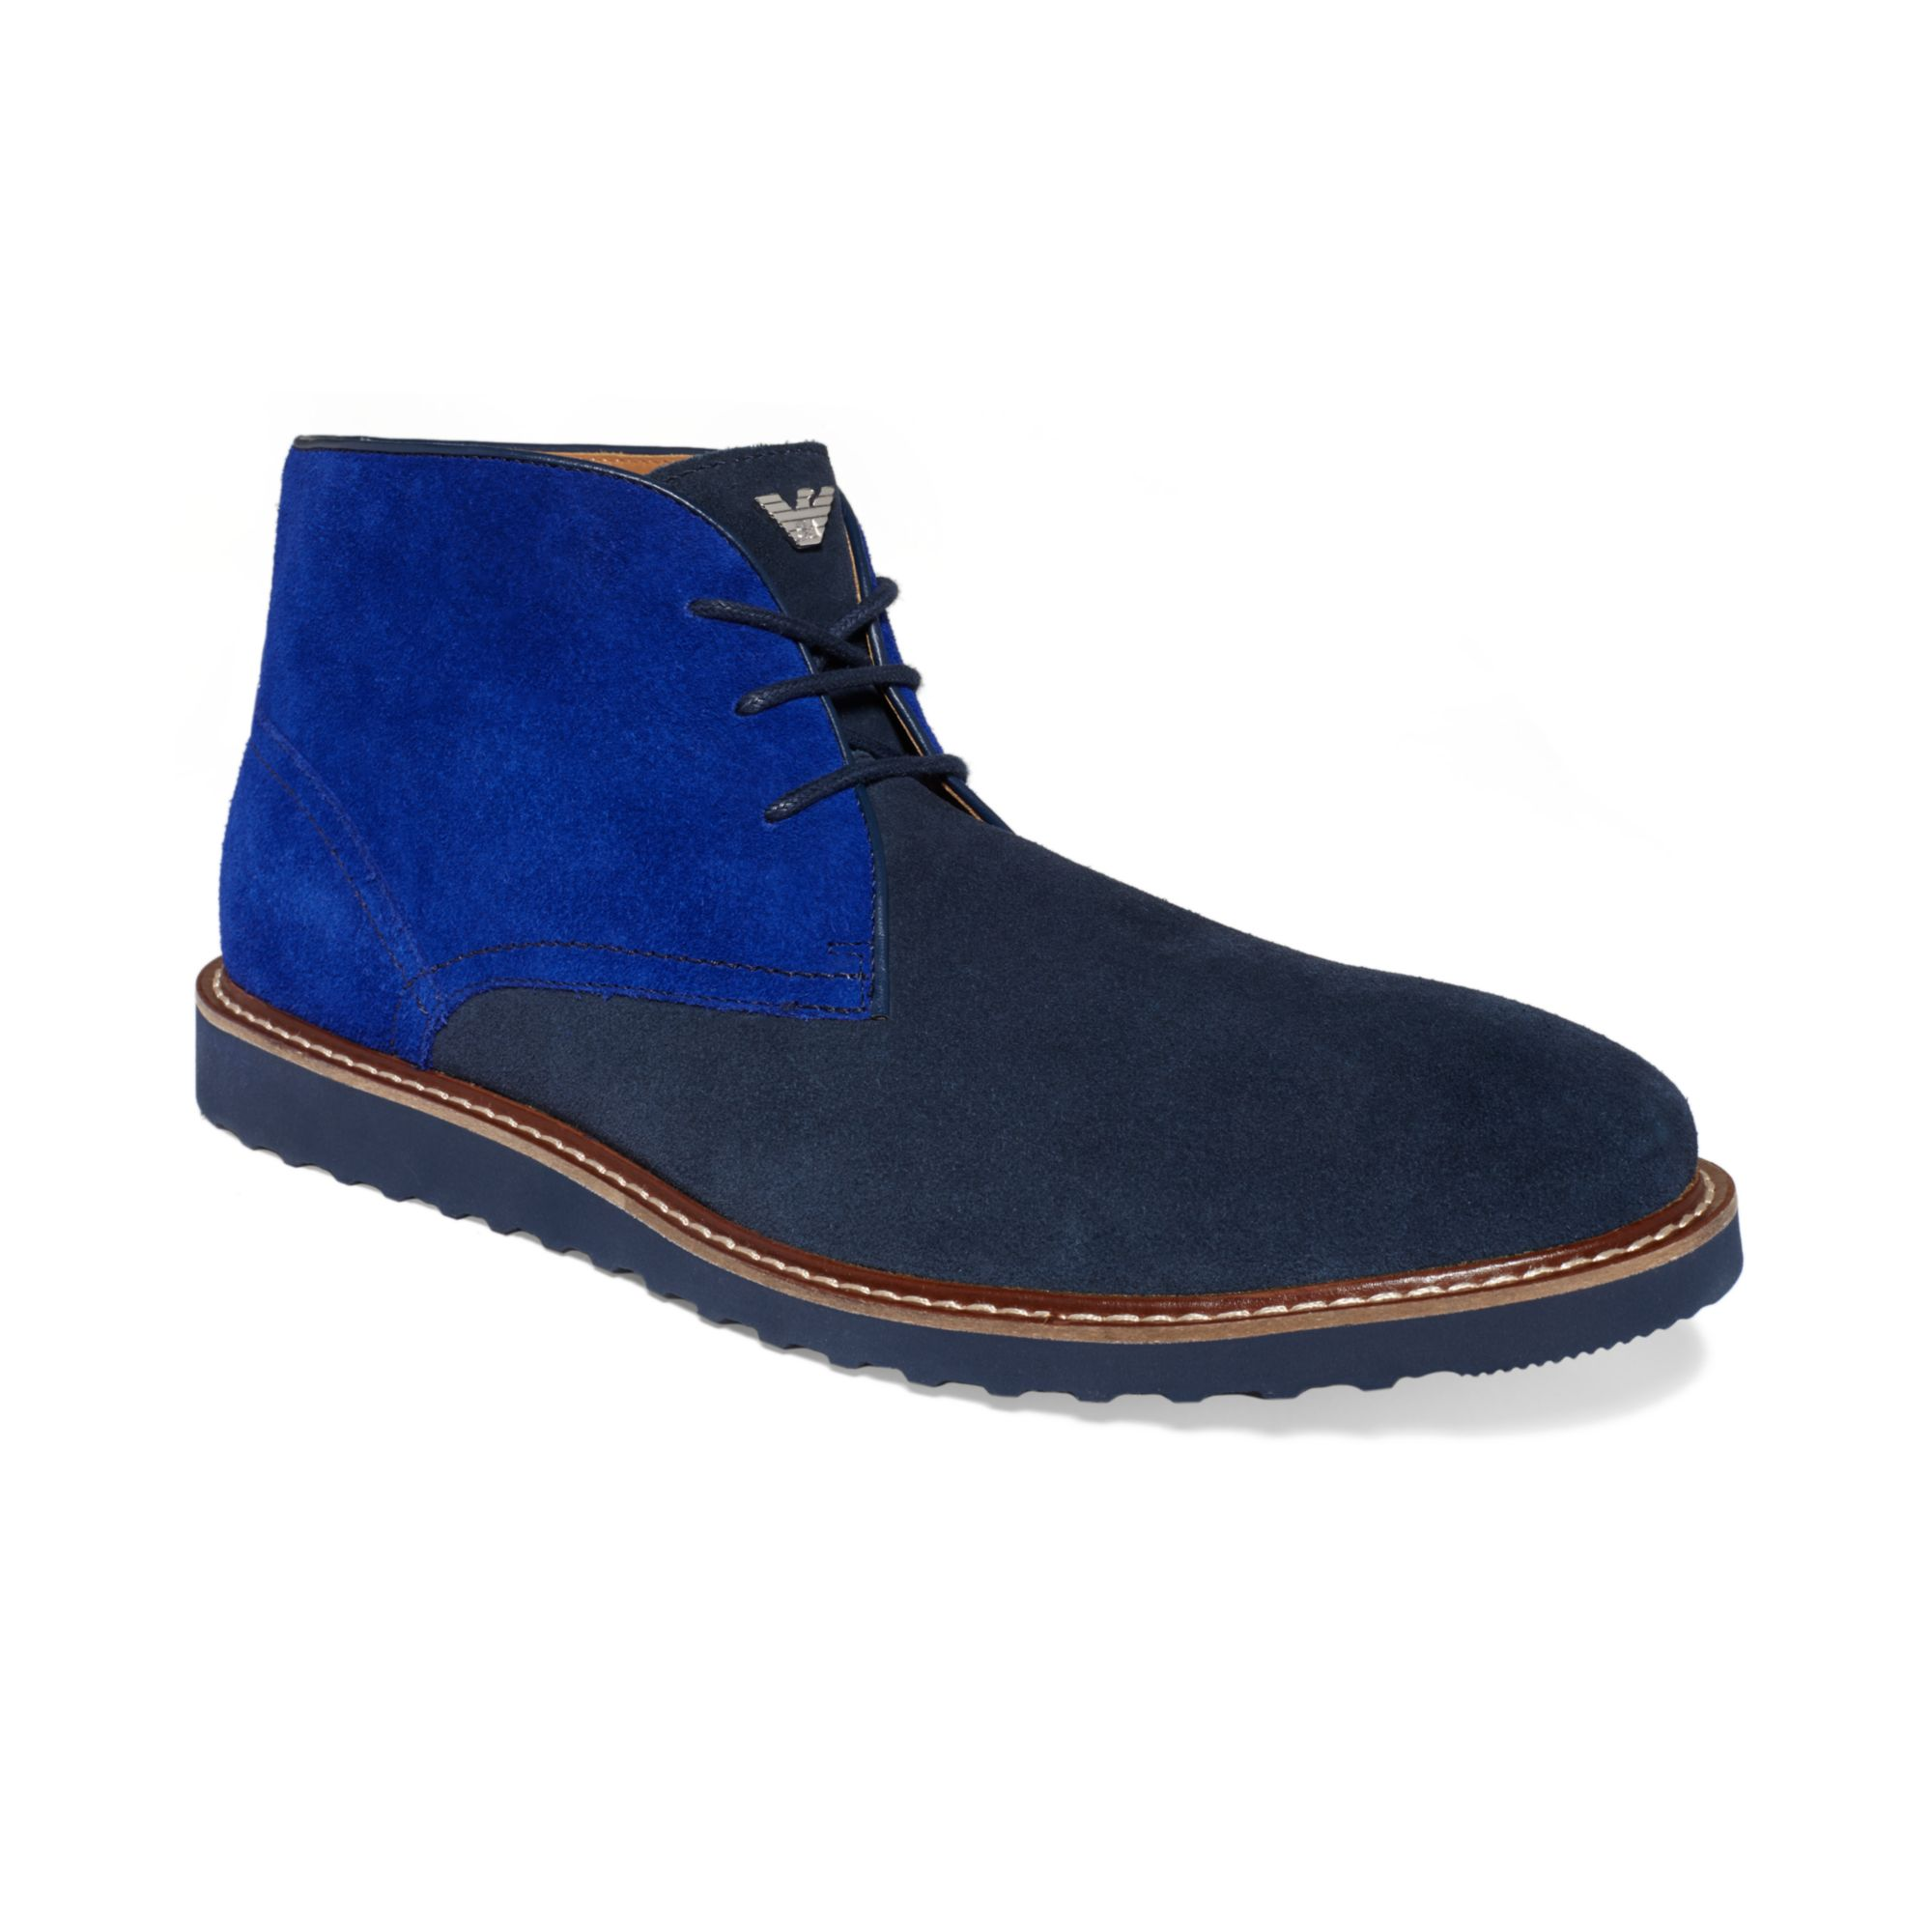 Armani Jeans Suede Chukka Boots In Blue For Men Lyst